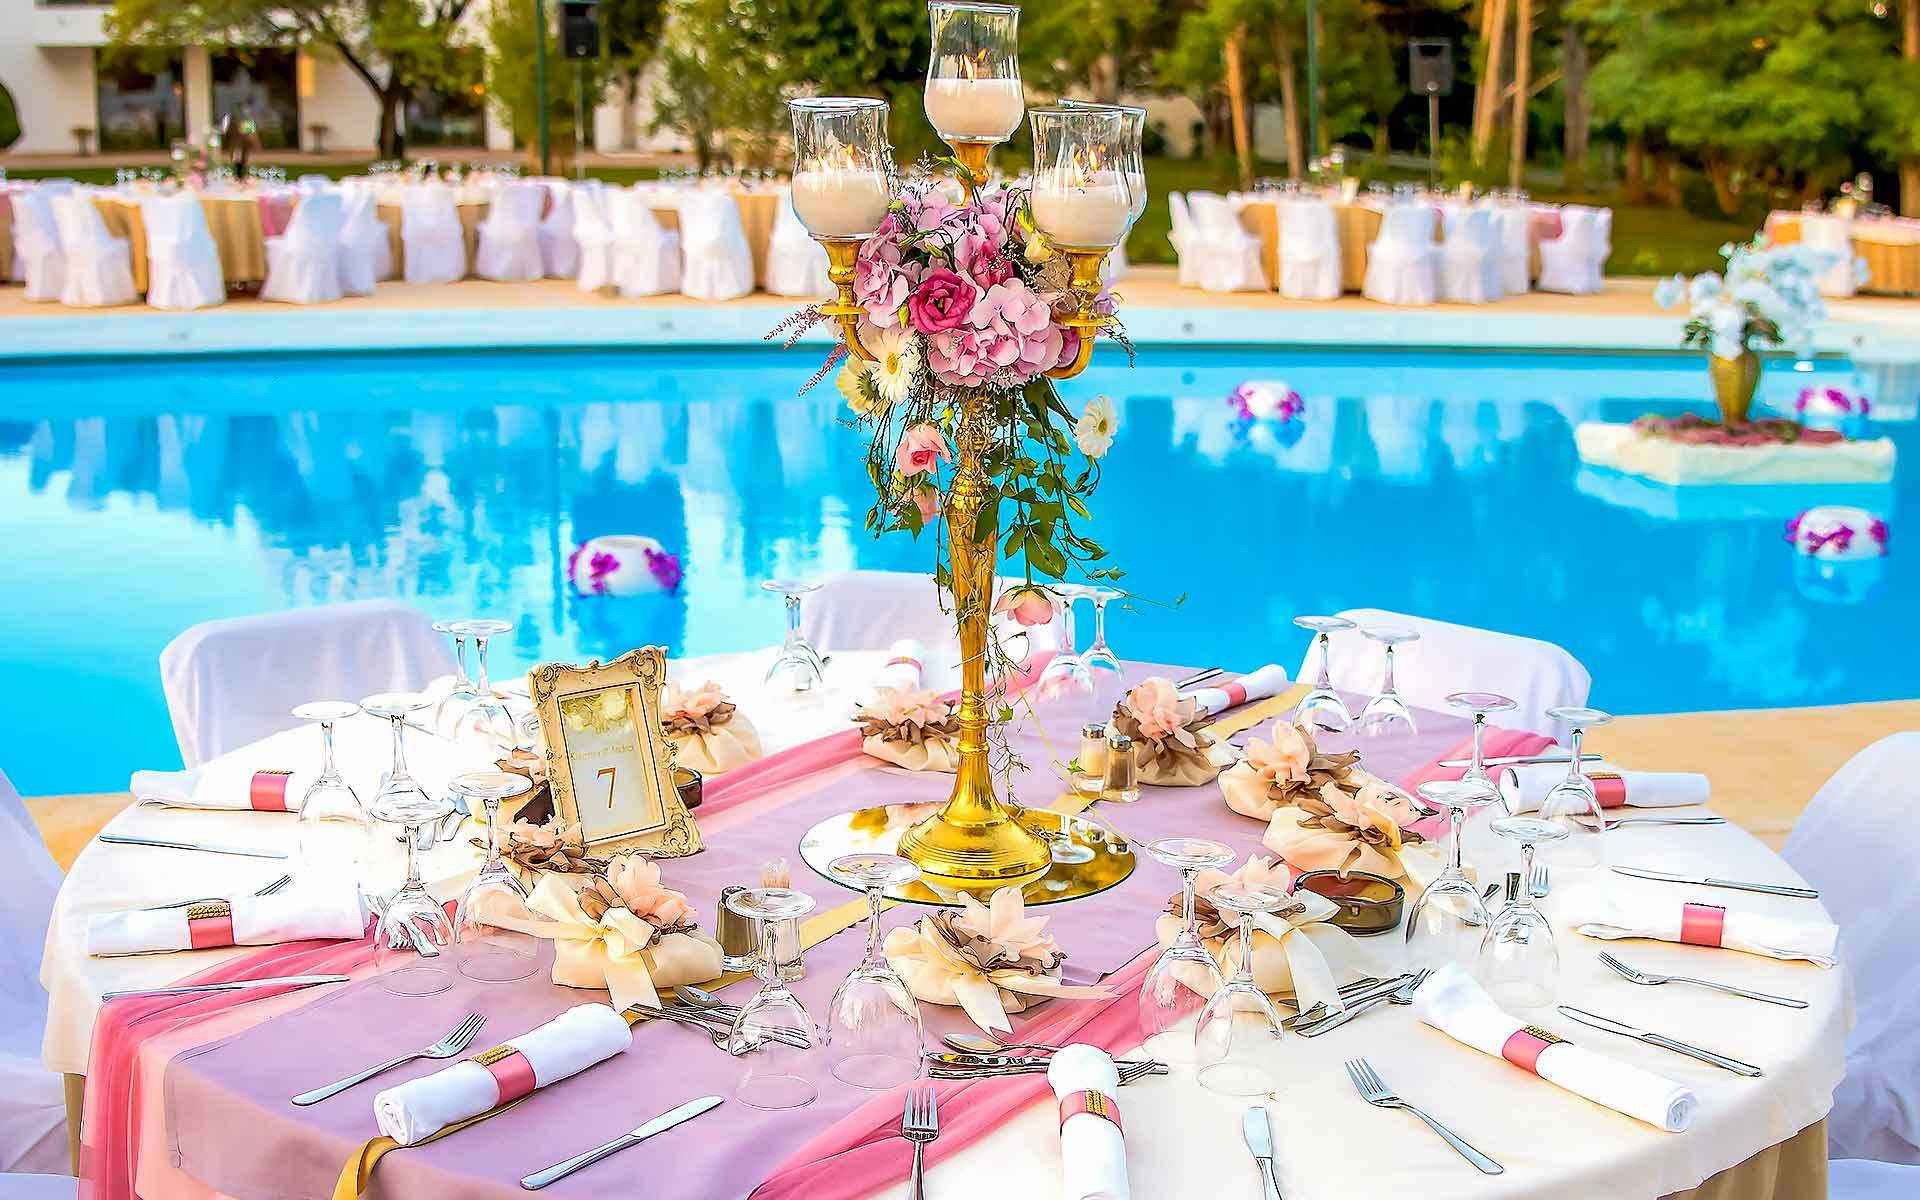 Gold-candlestick-centerpiece-in-pastel-colors-by-Diamond-Events